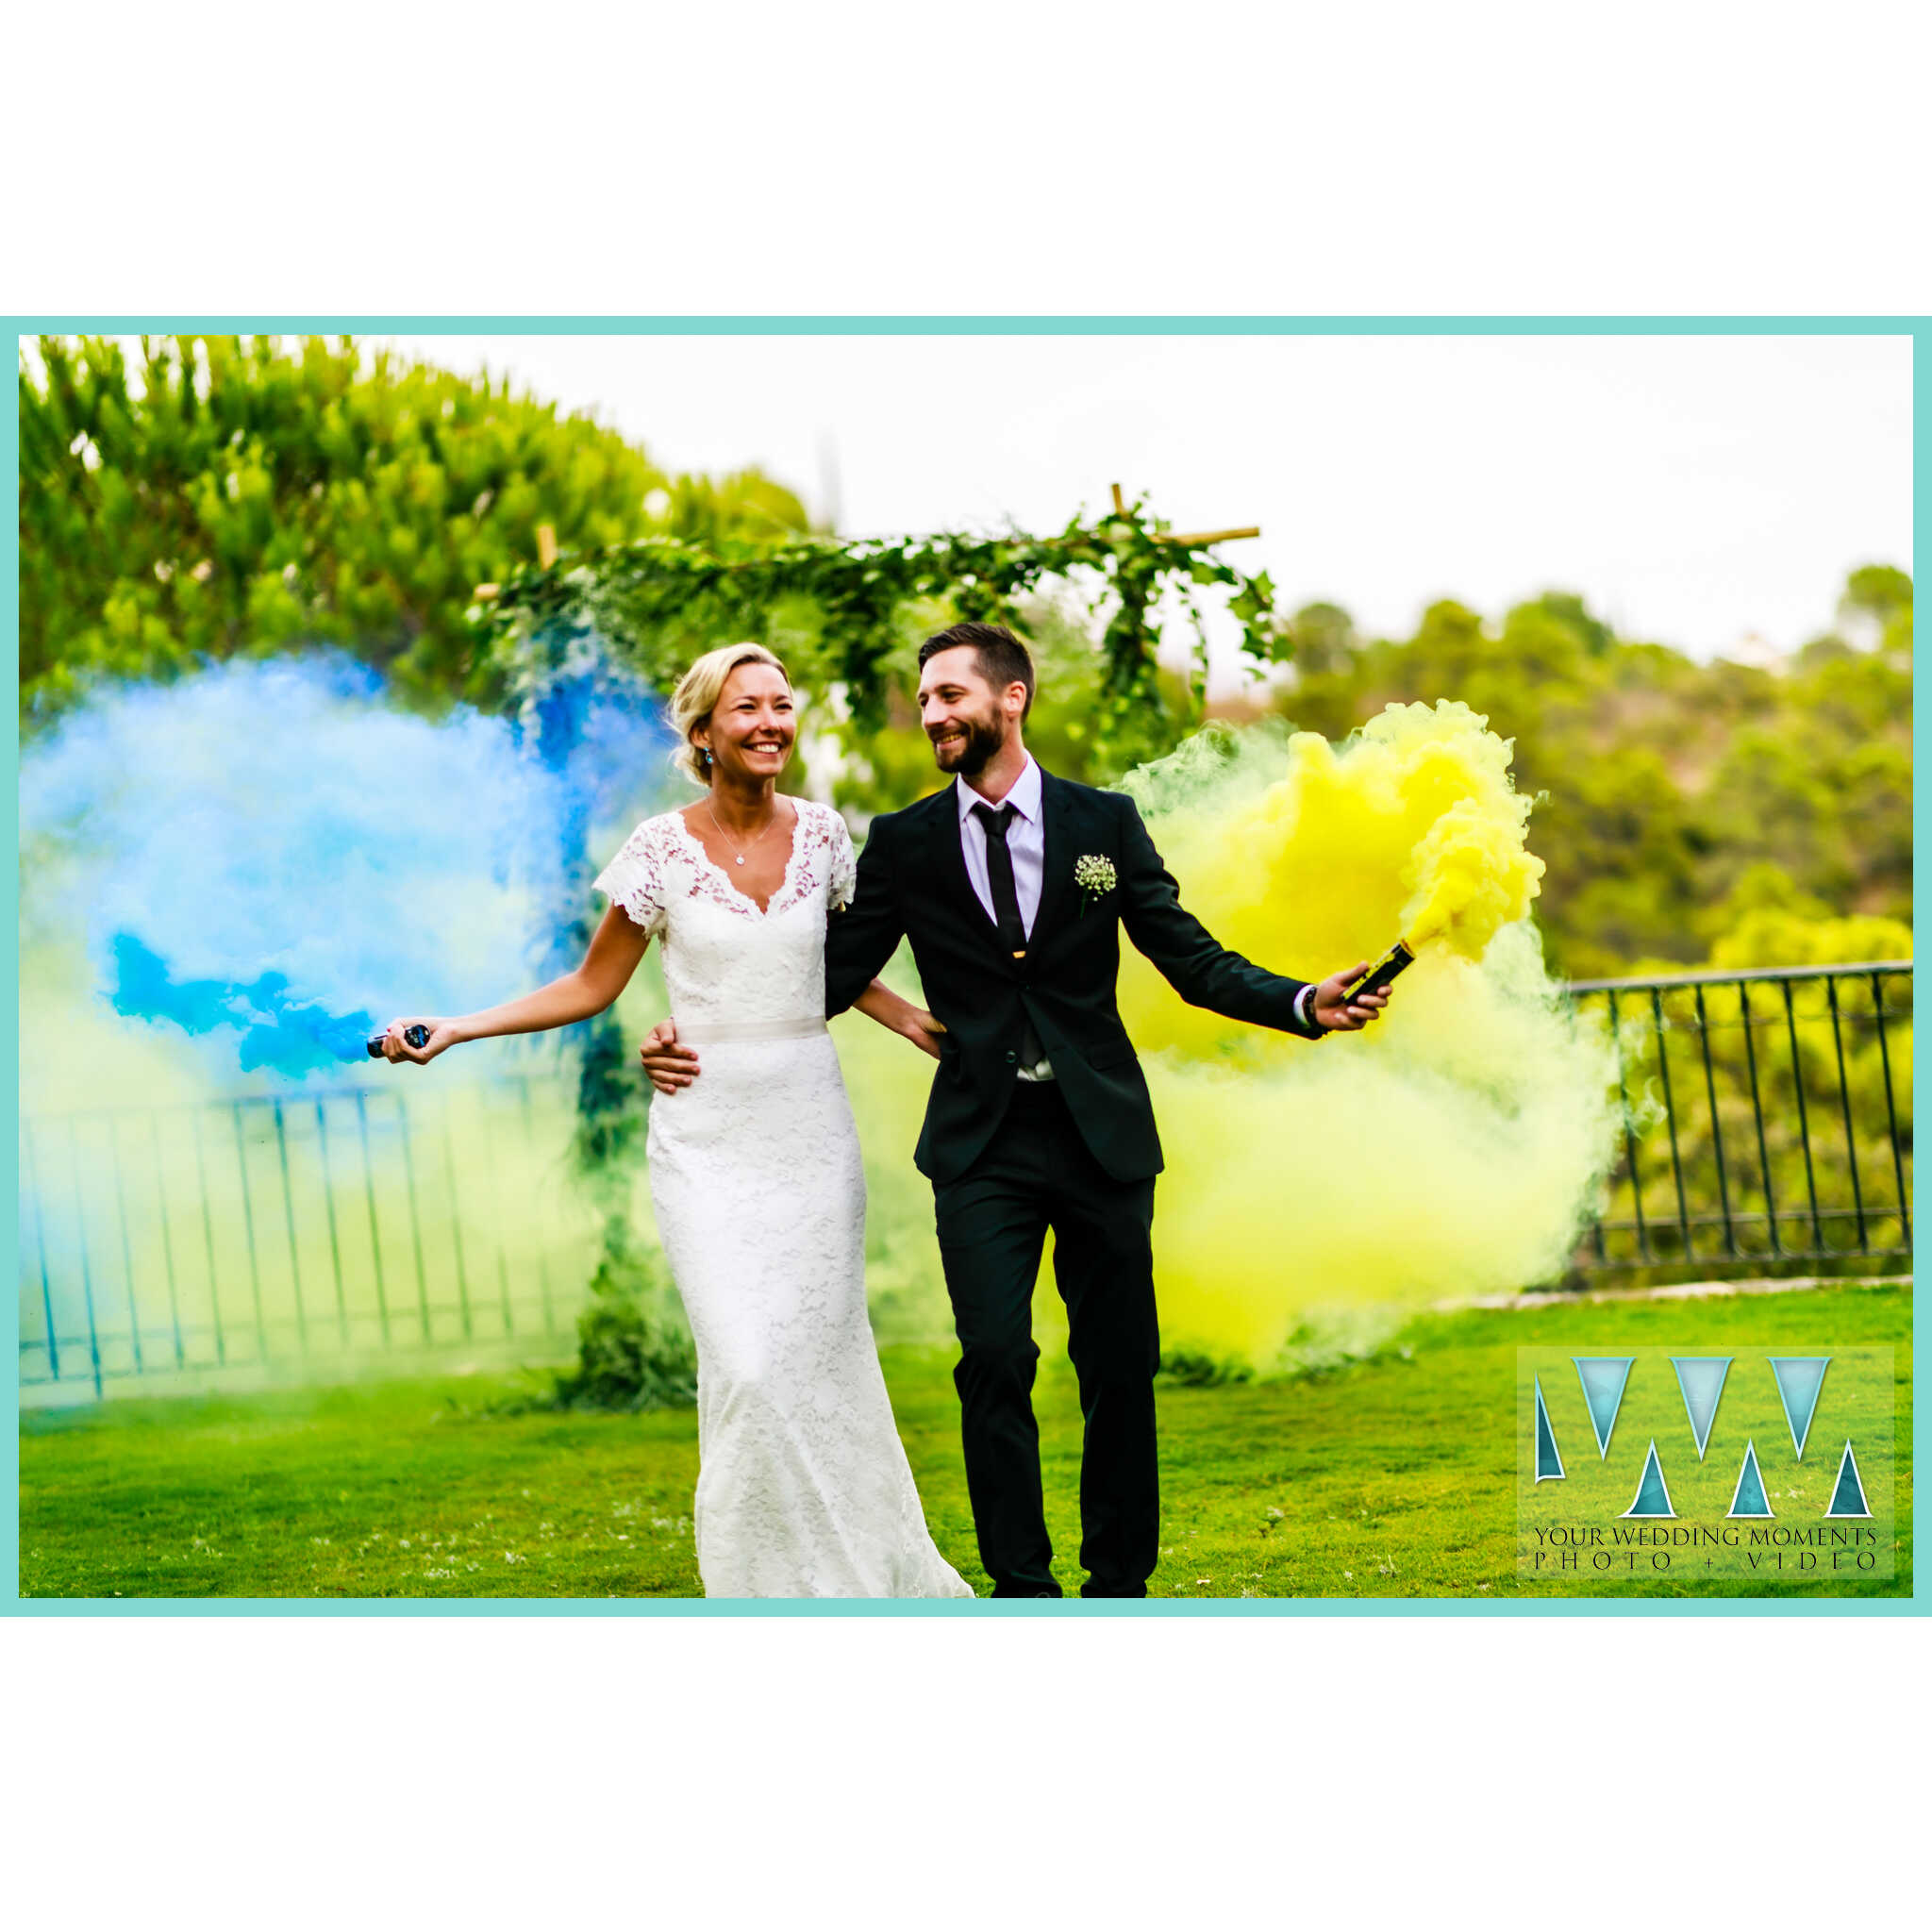 wedding photographer villa Candela madronal marbella spain IG 2019 56